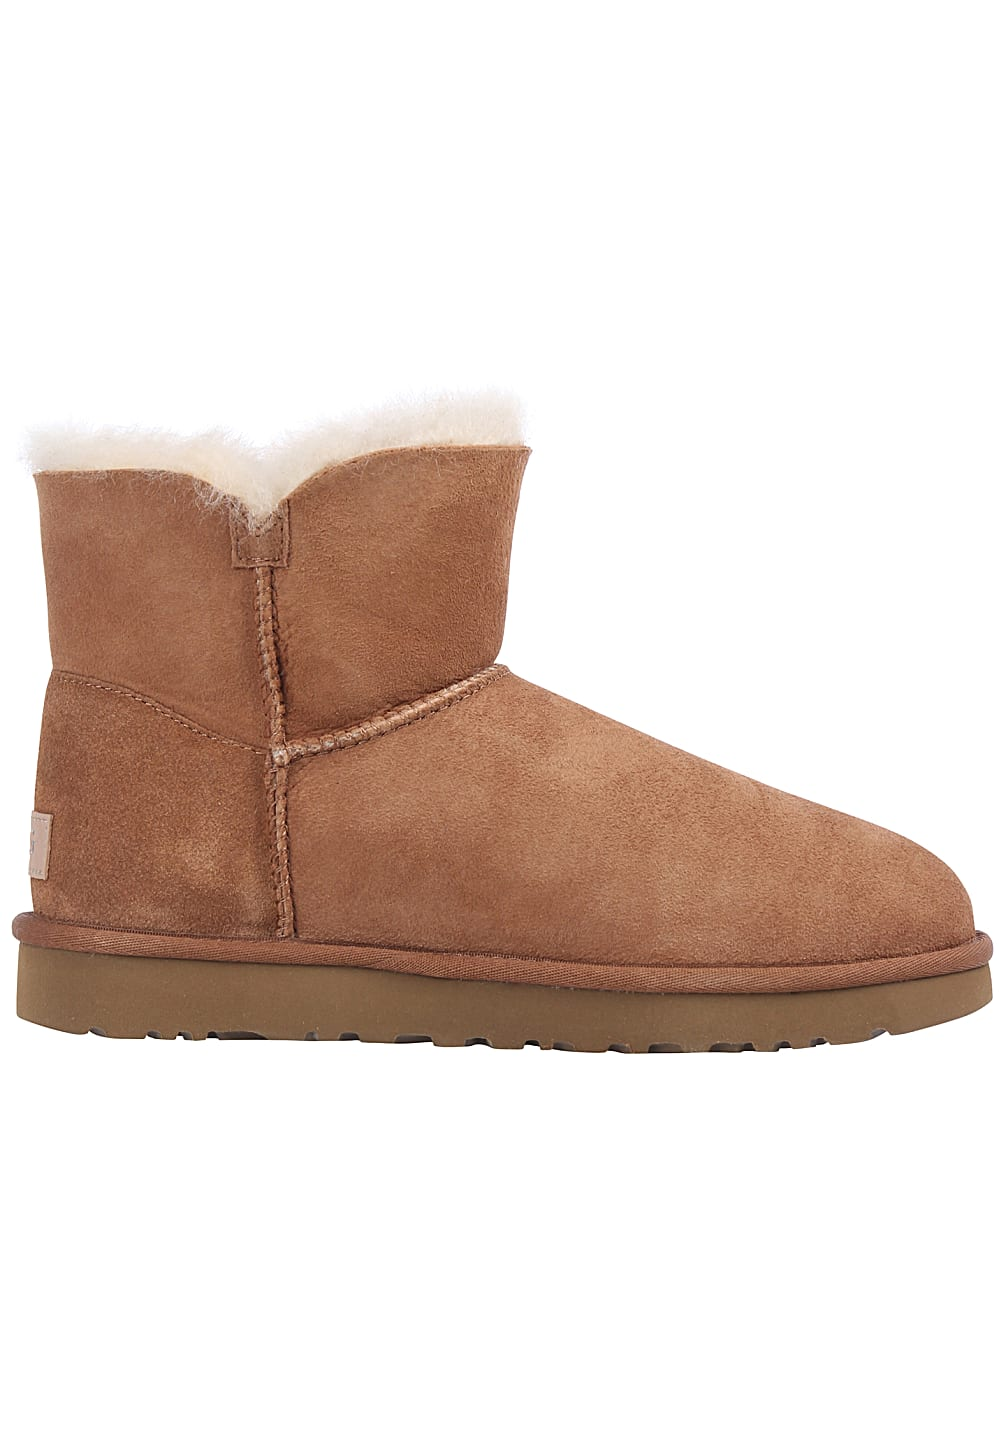 8572dfa72a6f49 UGG Mini Bailey Button II - Stiefel für Damen - Braun - Planet Sports